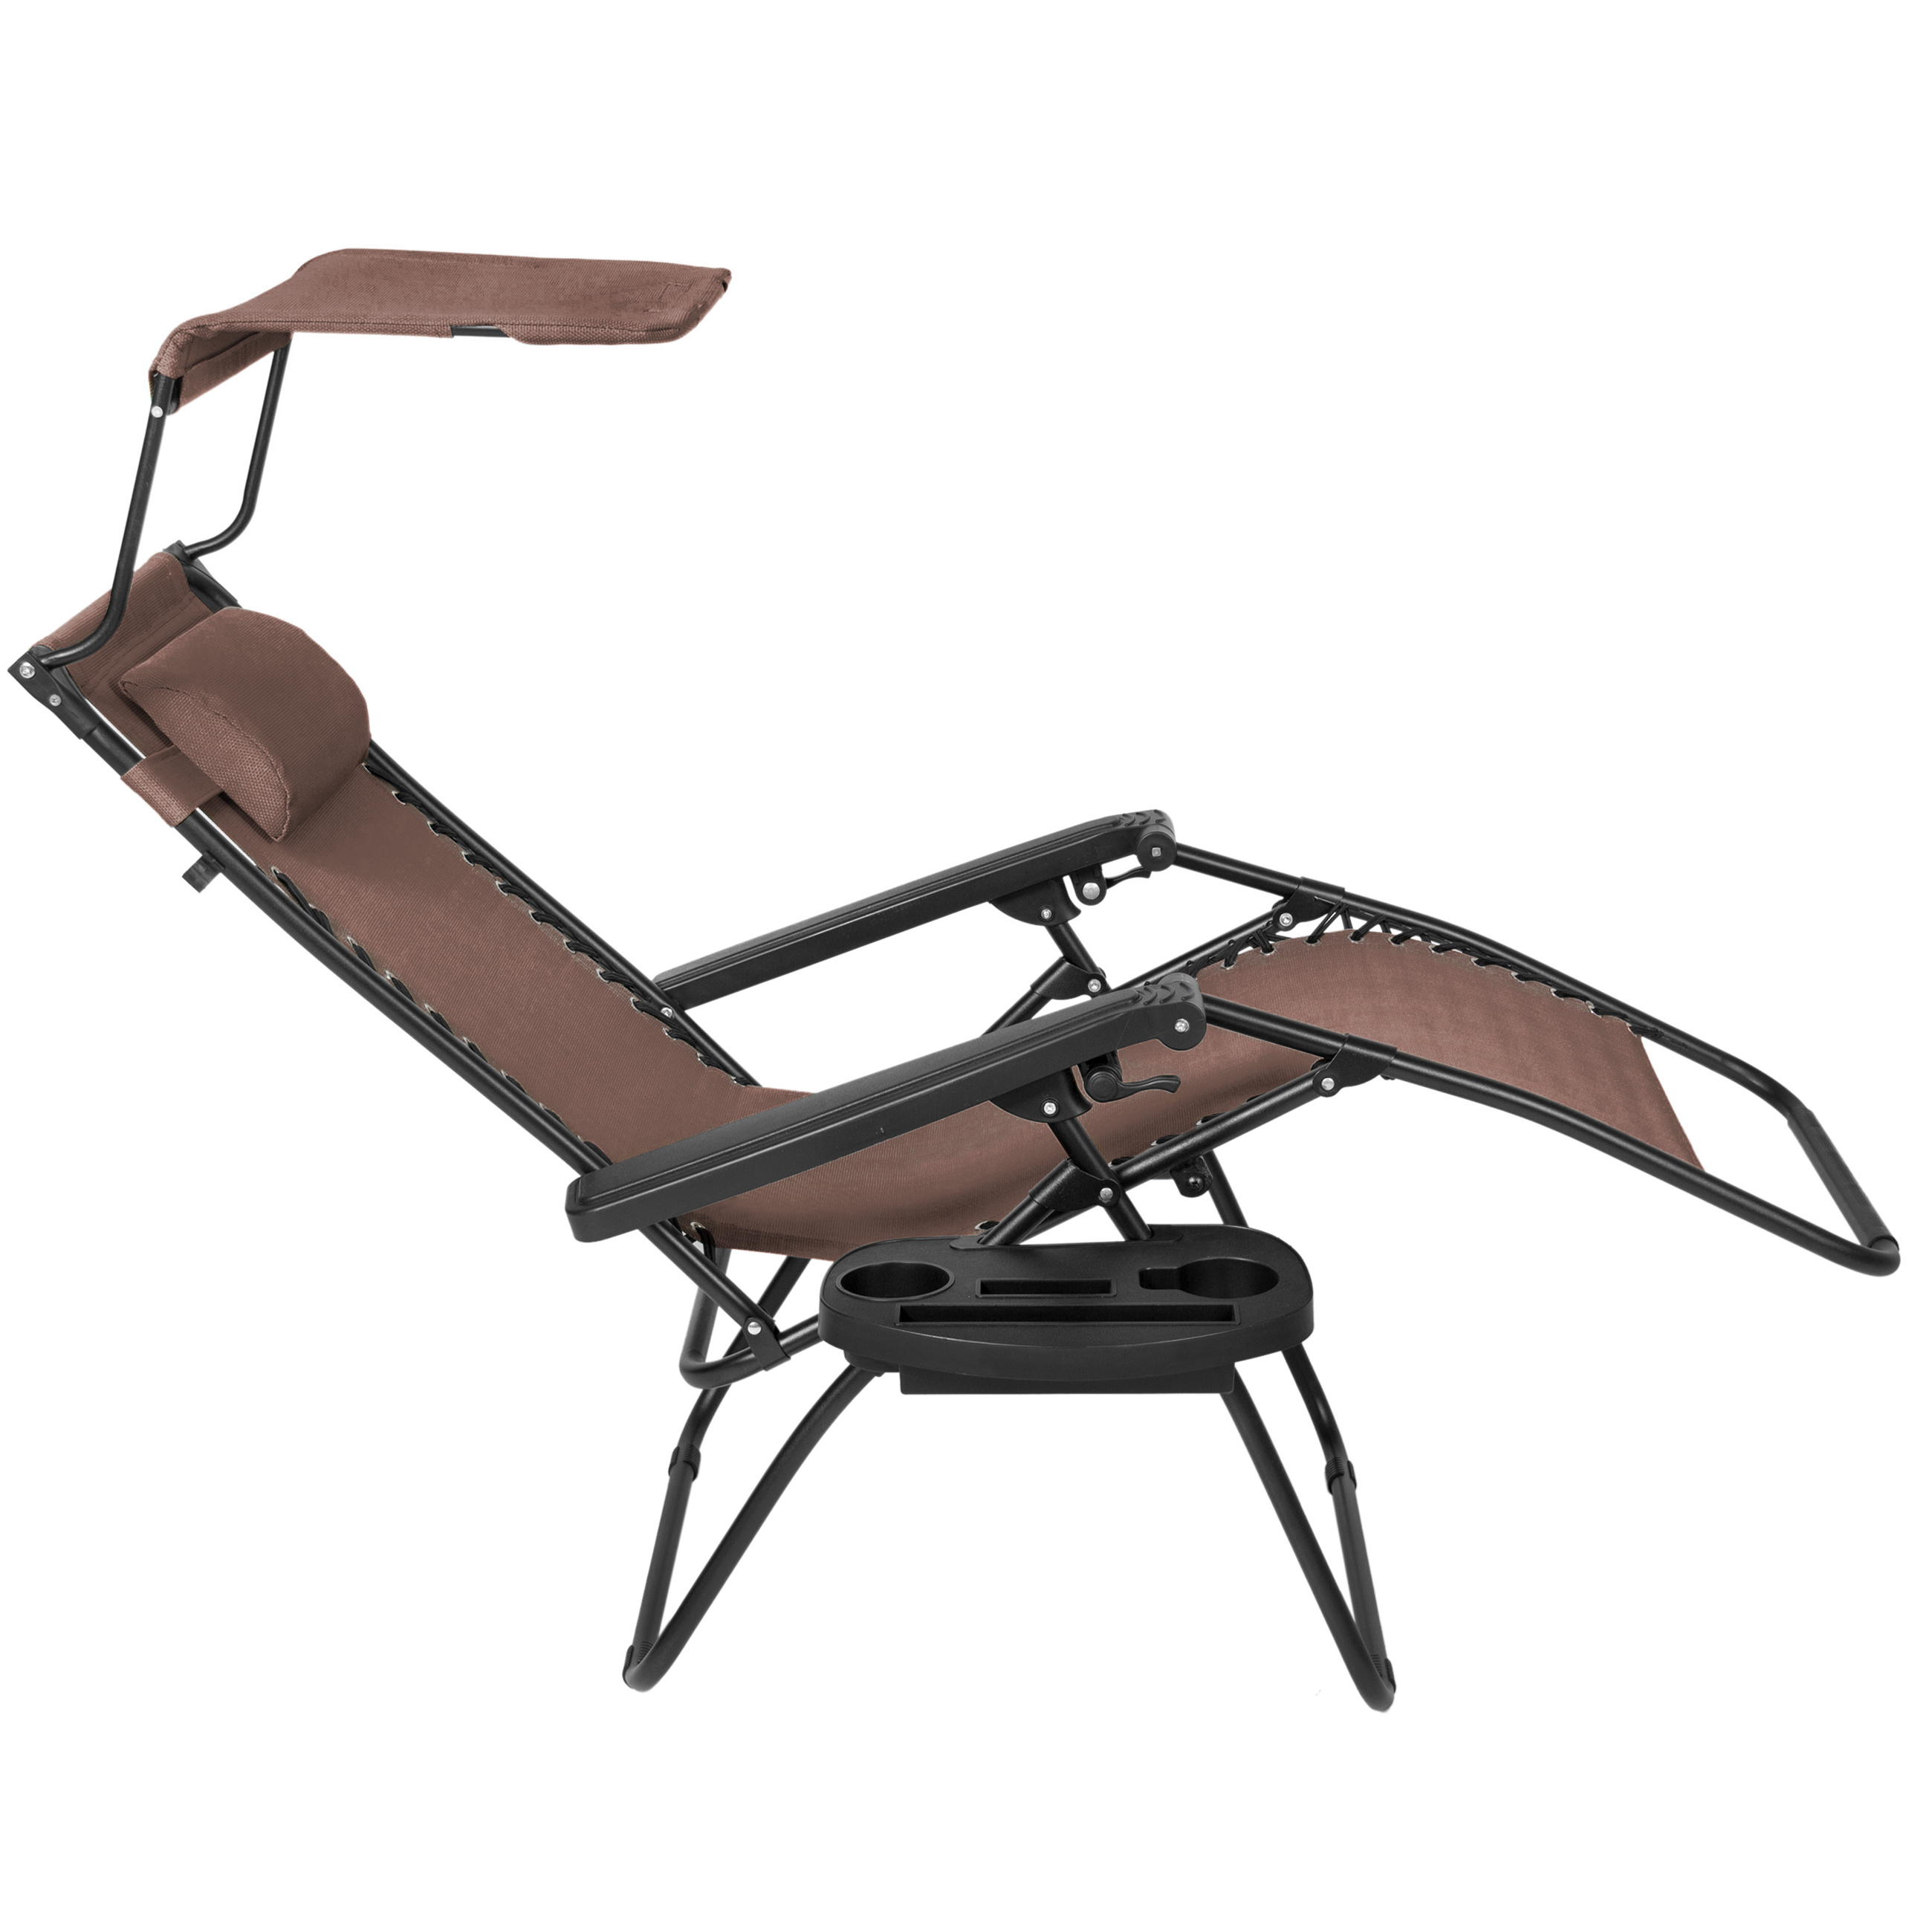 BCP-Folding-Zero-Gravity-Recliner-Lounge-Chair-w-Canopy-Cup-Holder thumbnail 25